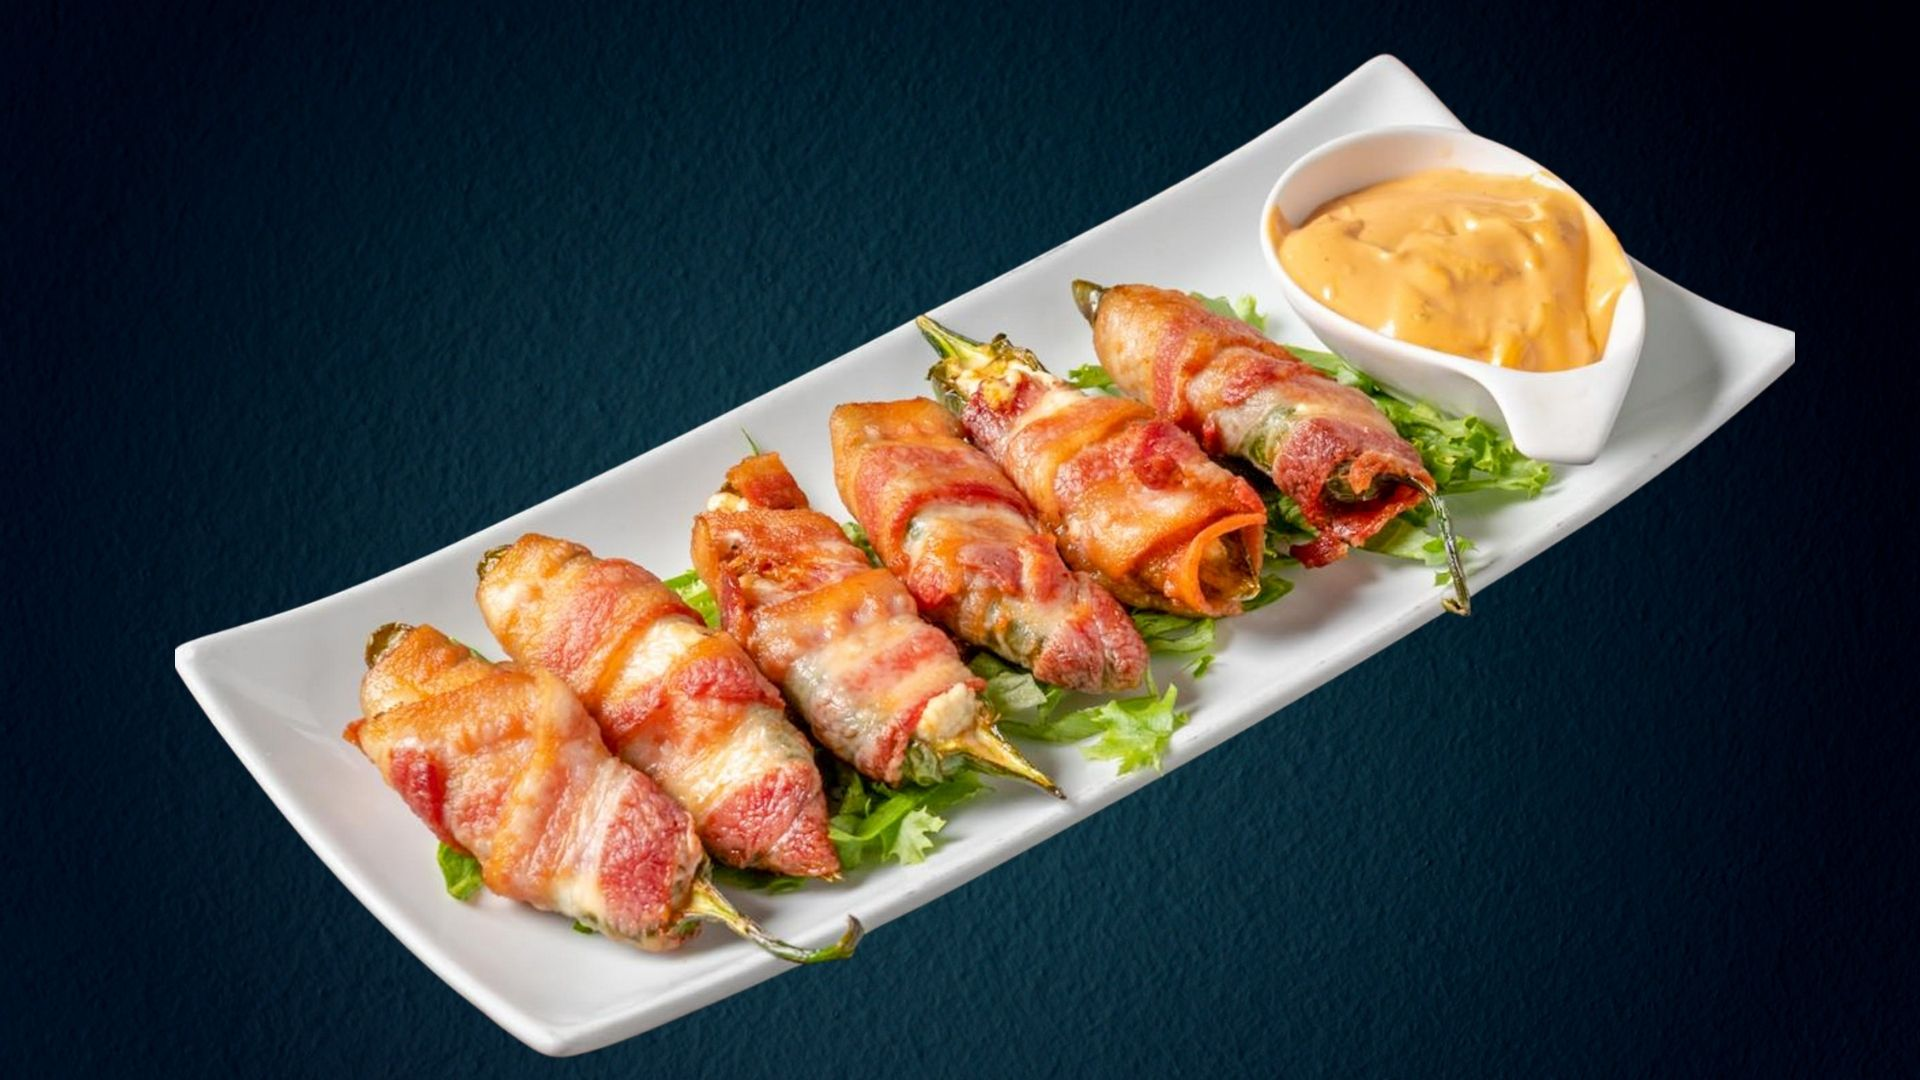 Pier 53 - Bacon Jalapeno Poppers